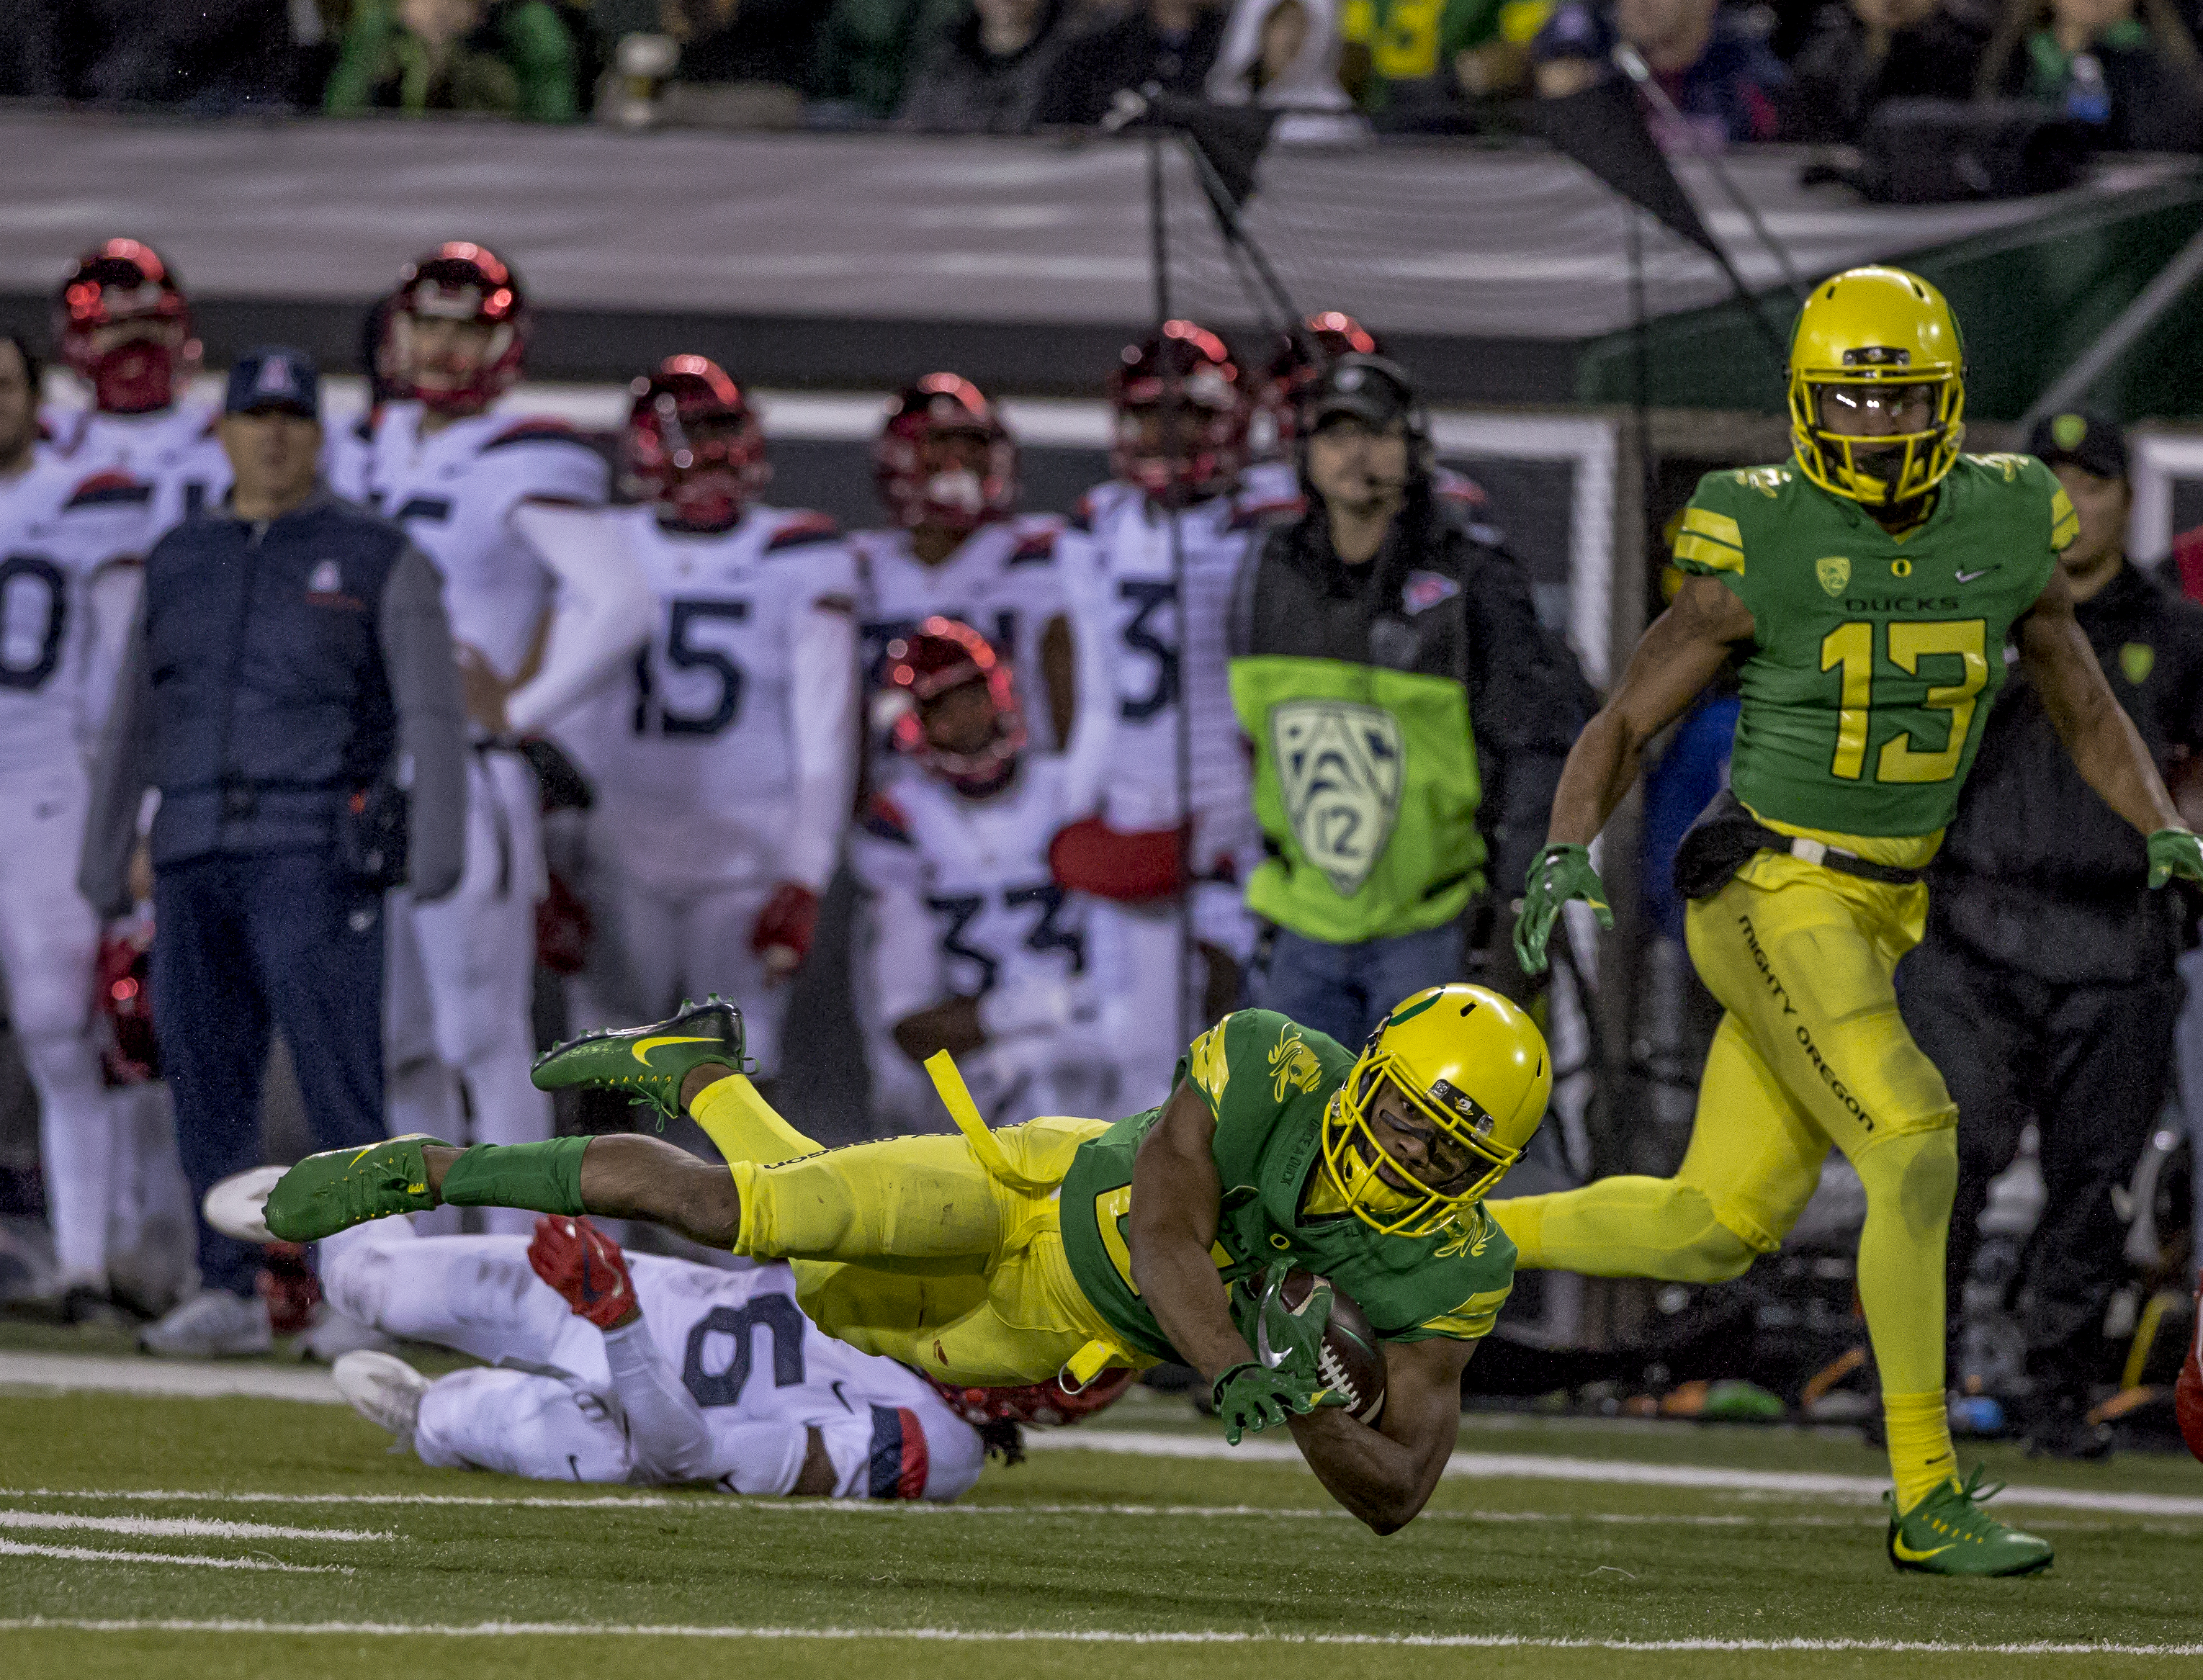 Oregon running back Tony Brooks-James (#20) dives forward with the ball for a first down. The Oregon Ducks defeated the Arizona Wildcats 48 to 28 during a chilly evening game at Autzen Stadium on November 18, 2017. Photo by Ben Lonergan, Oregon News Lab